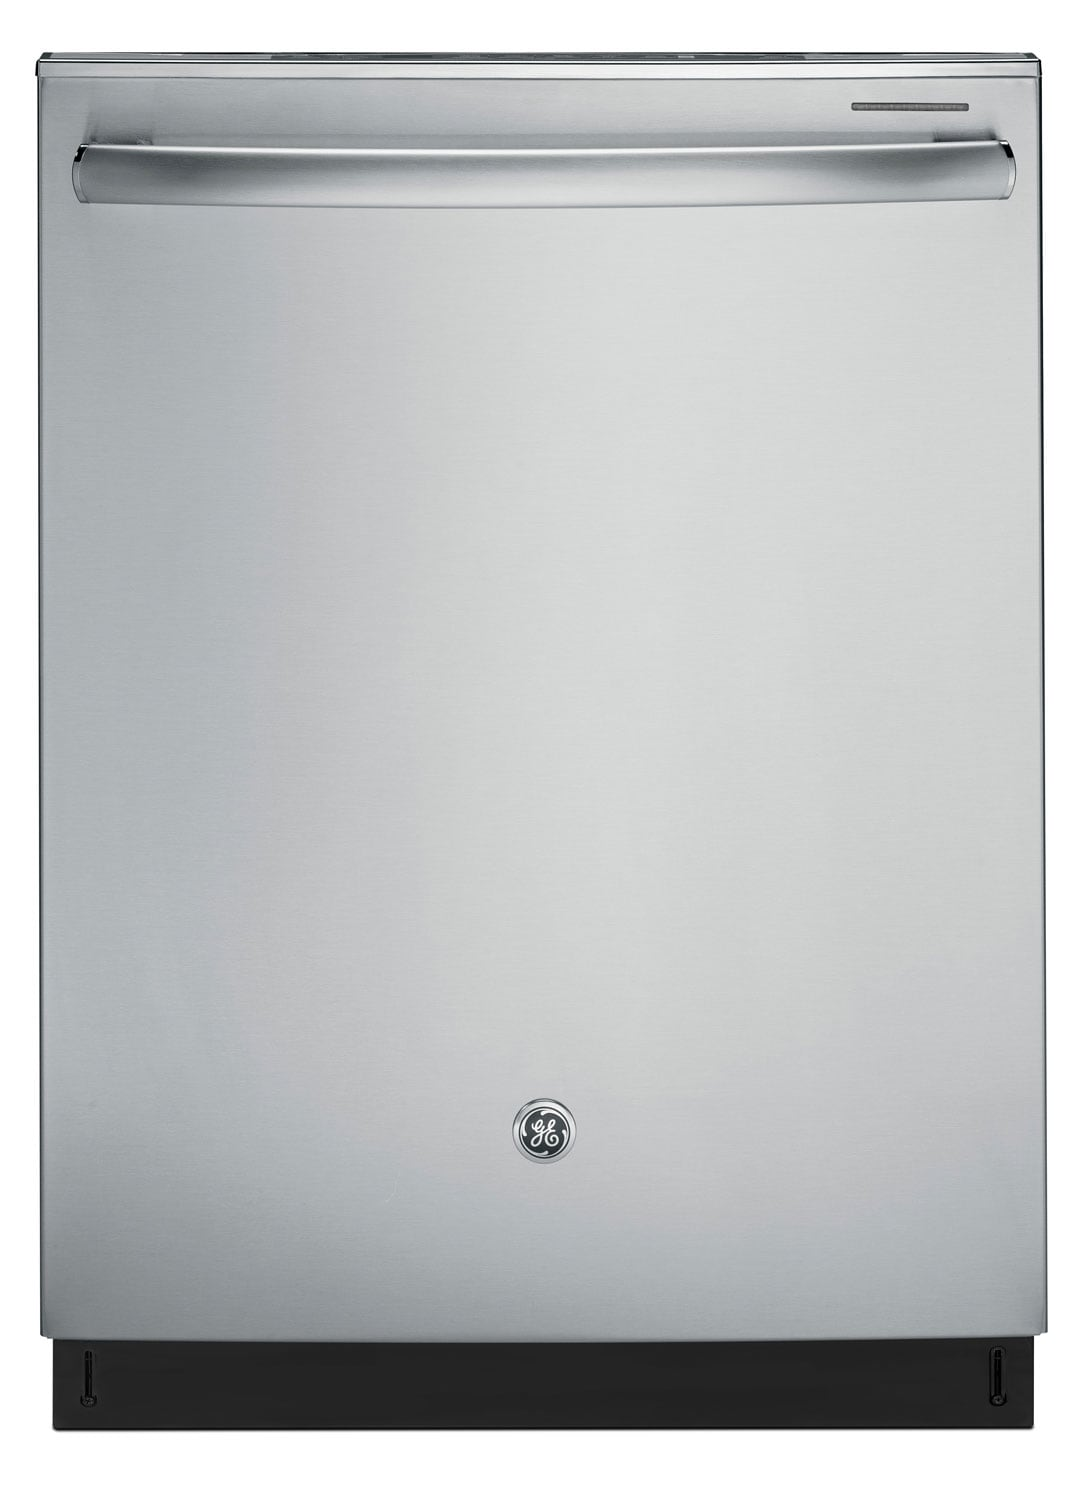 "GE® 24"" Built-In Dishwasher - Stainless Steel"